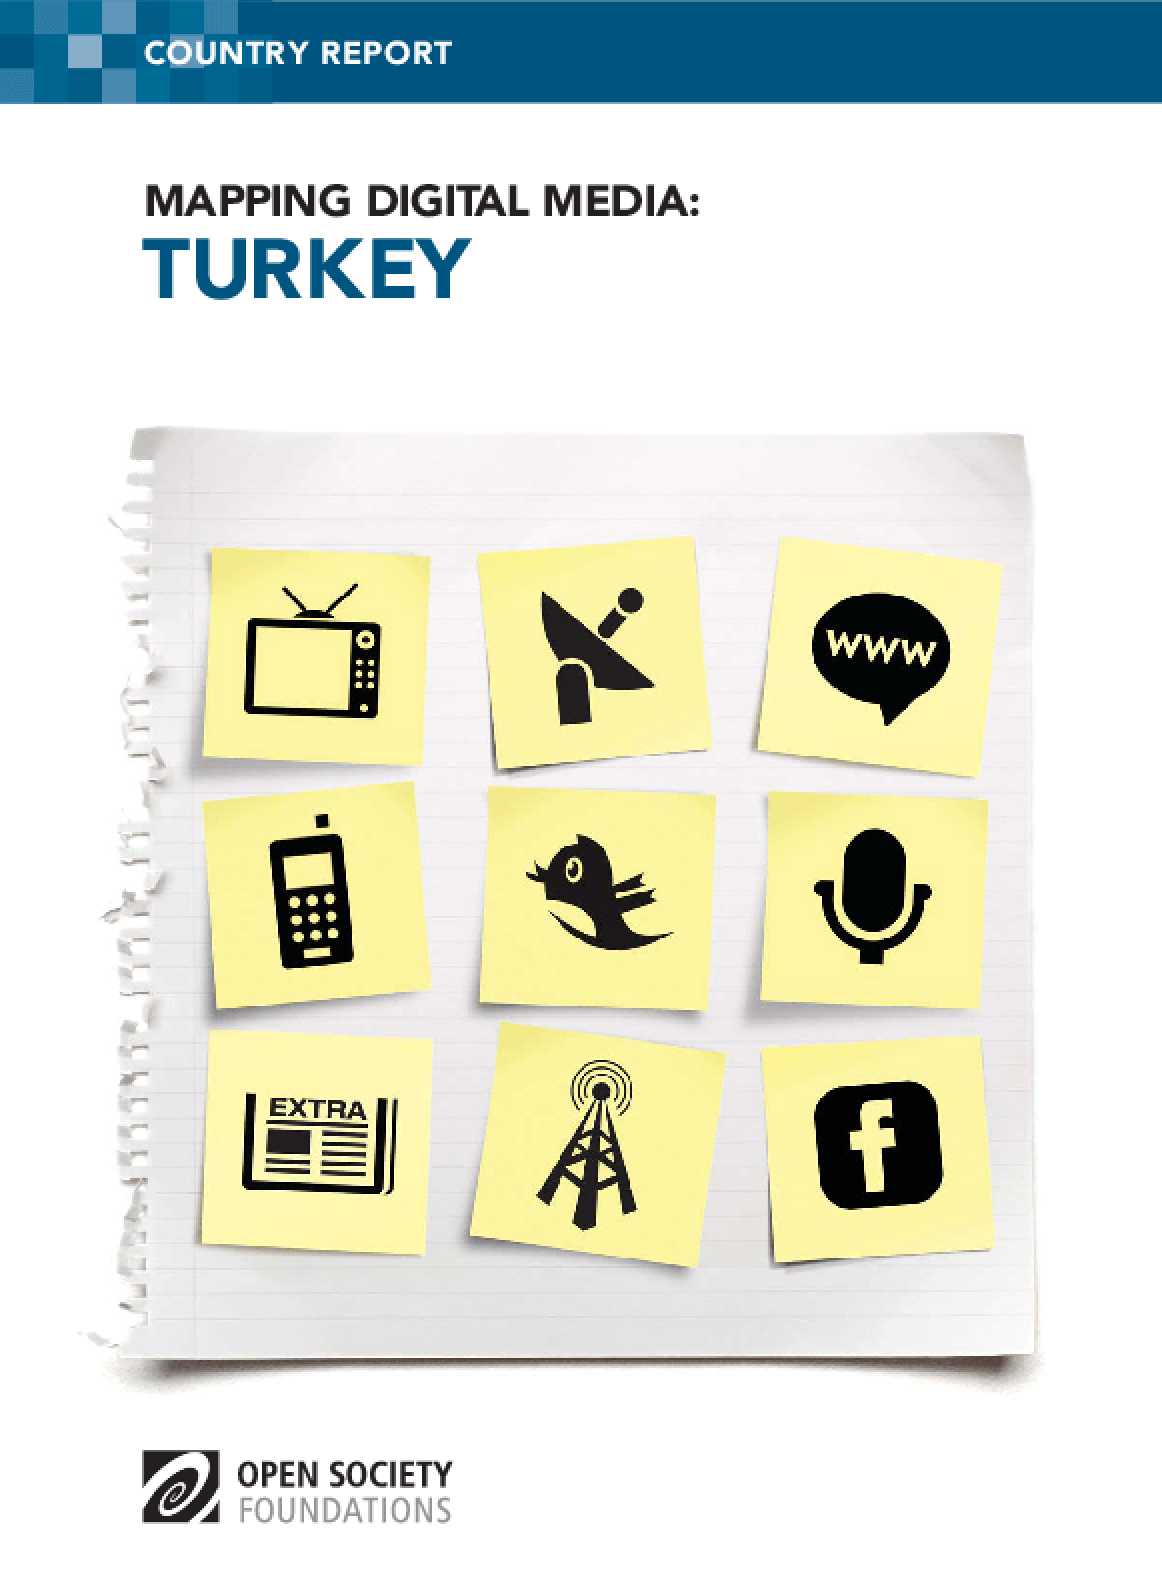 Mapping Digital Media: Turkey